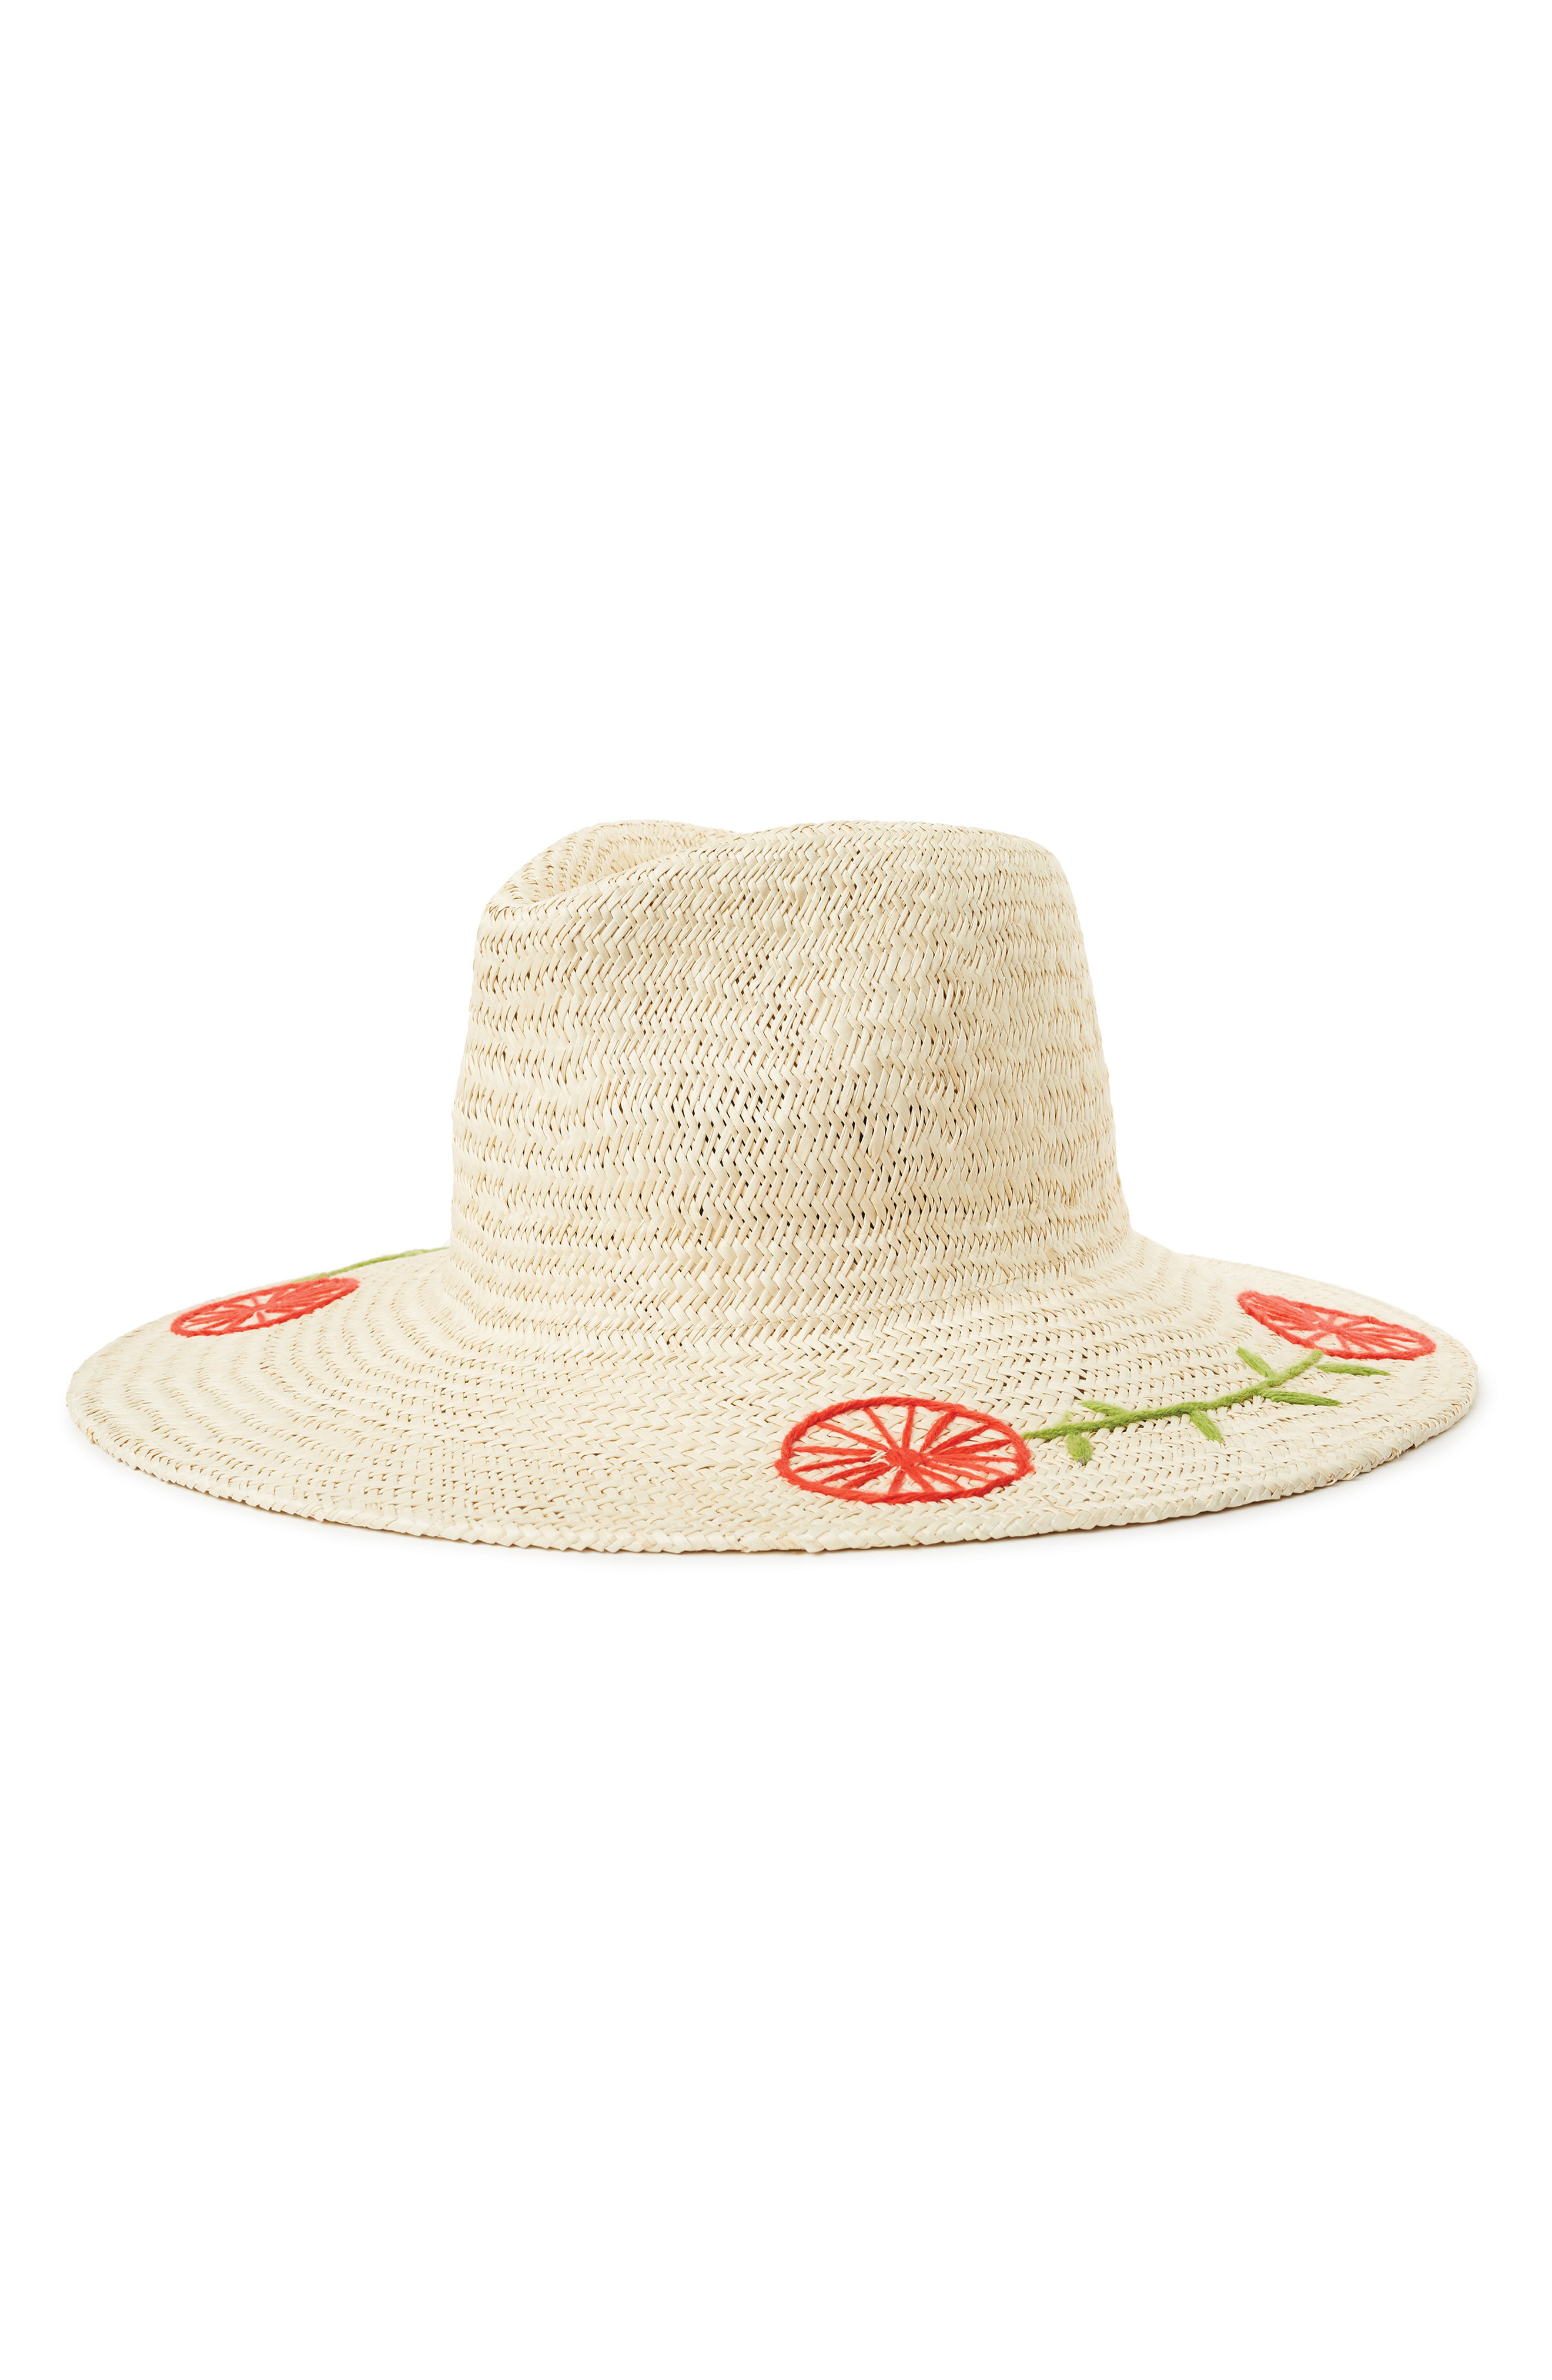 a432dcbf493 Brixton Joanna Embroidered Straw Hat - Beige In Tan